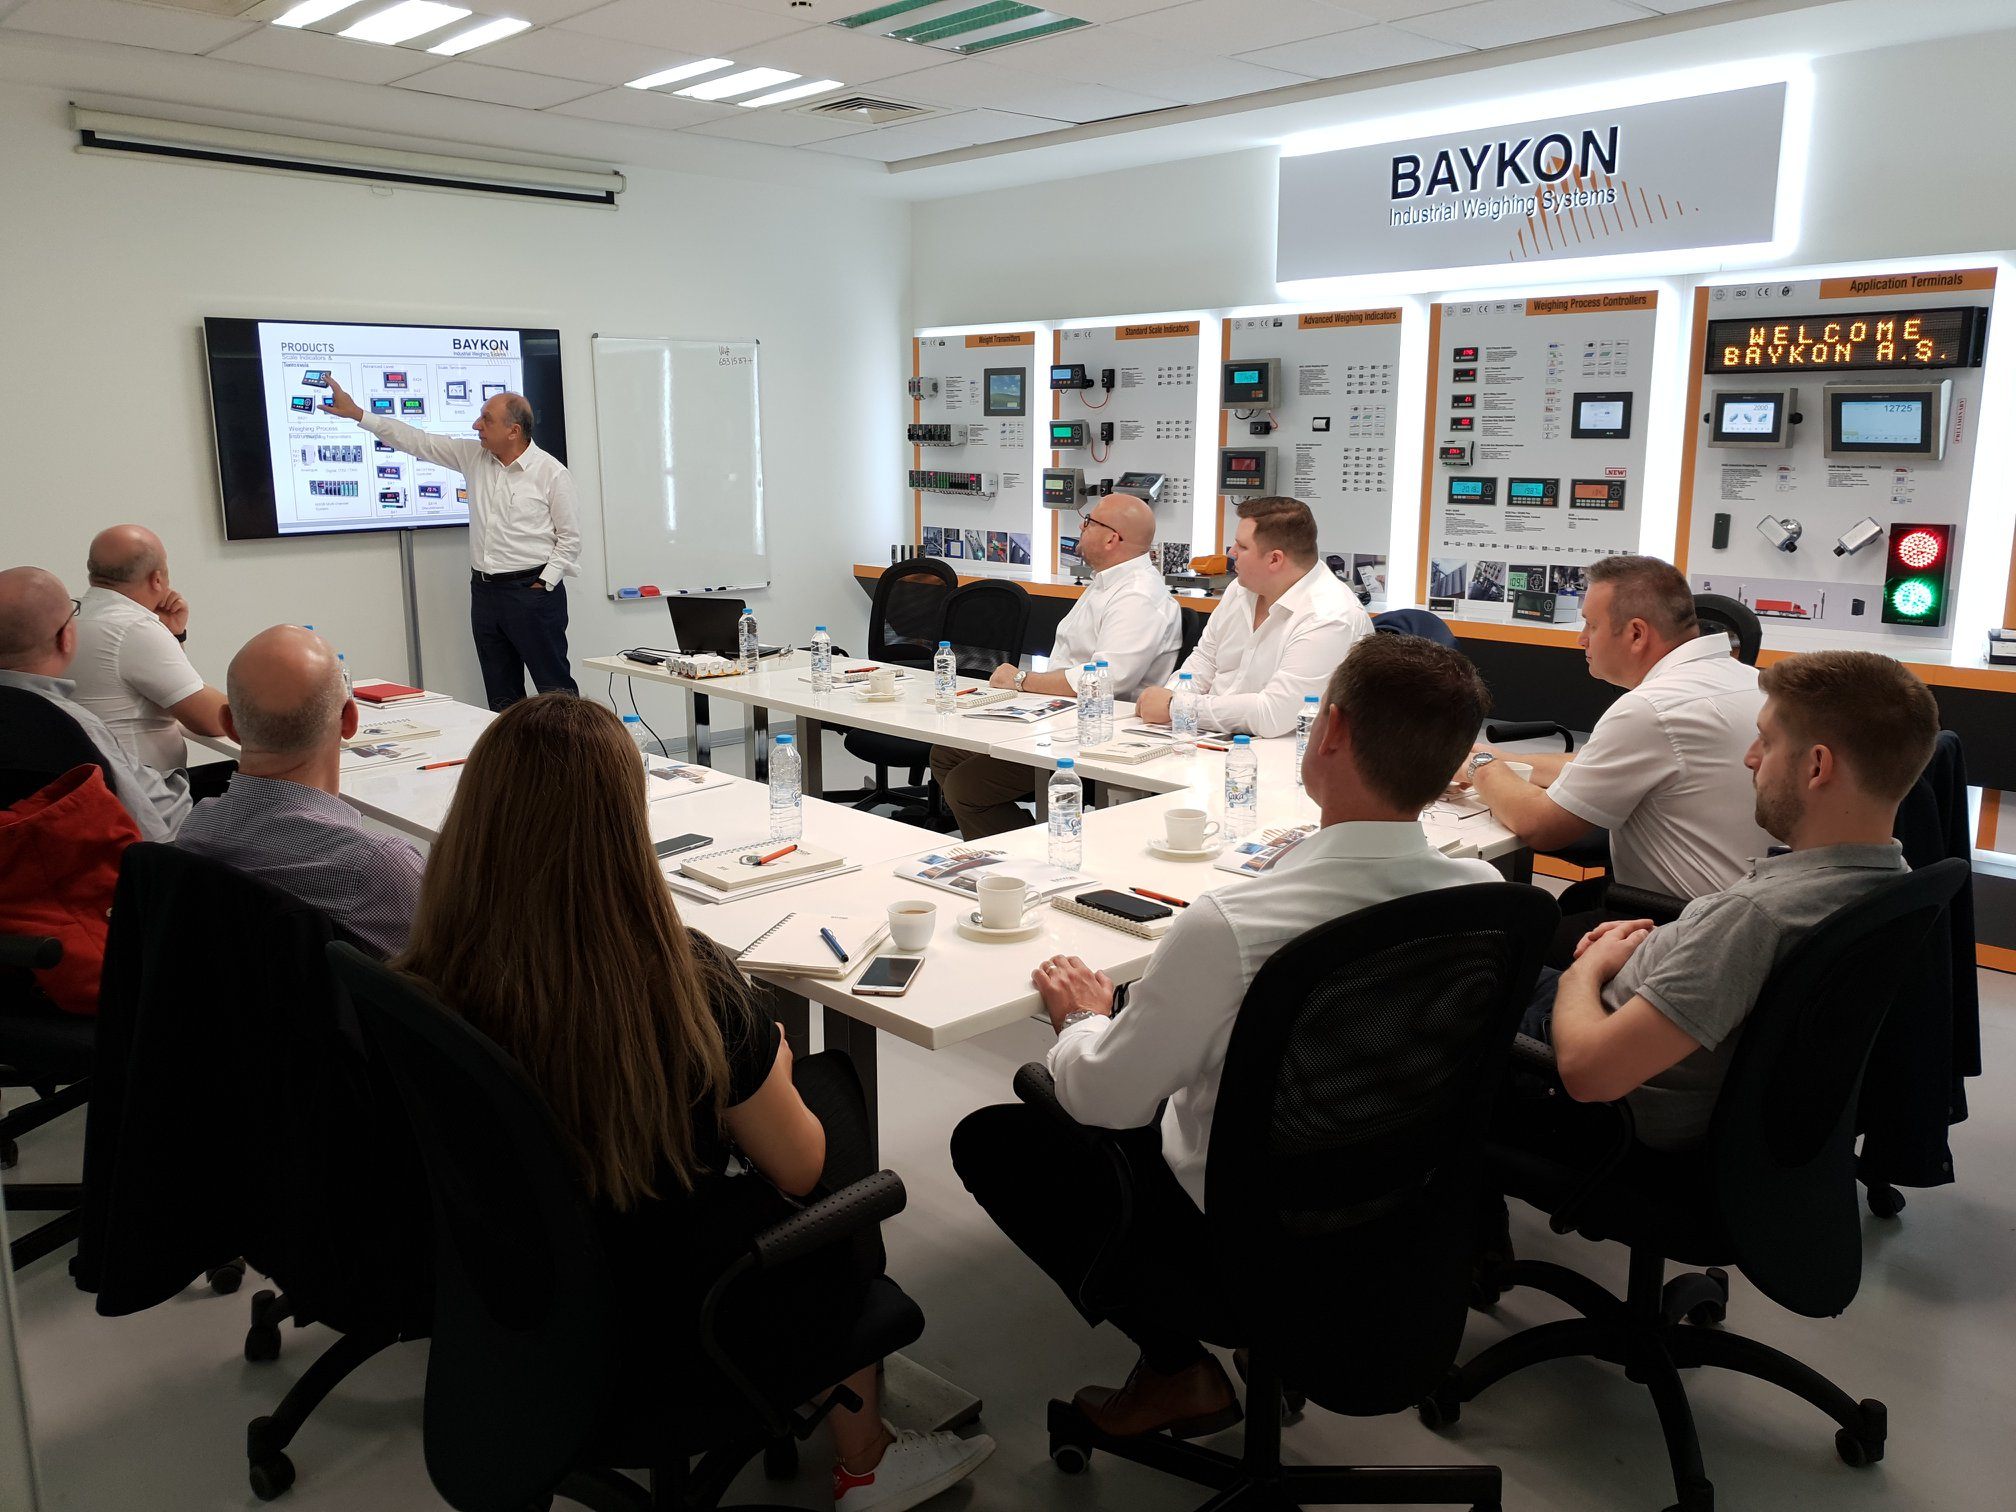 Baykon Weighing Solutions